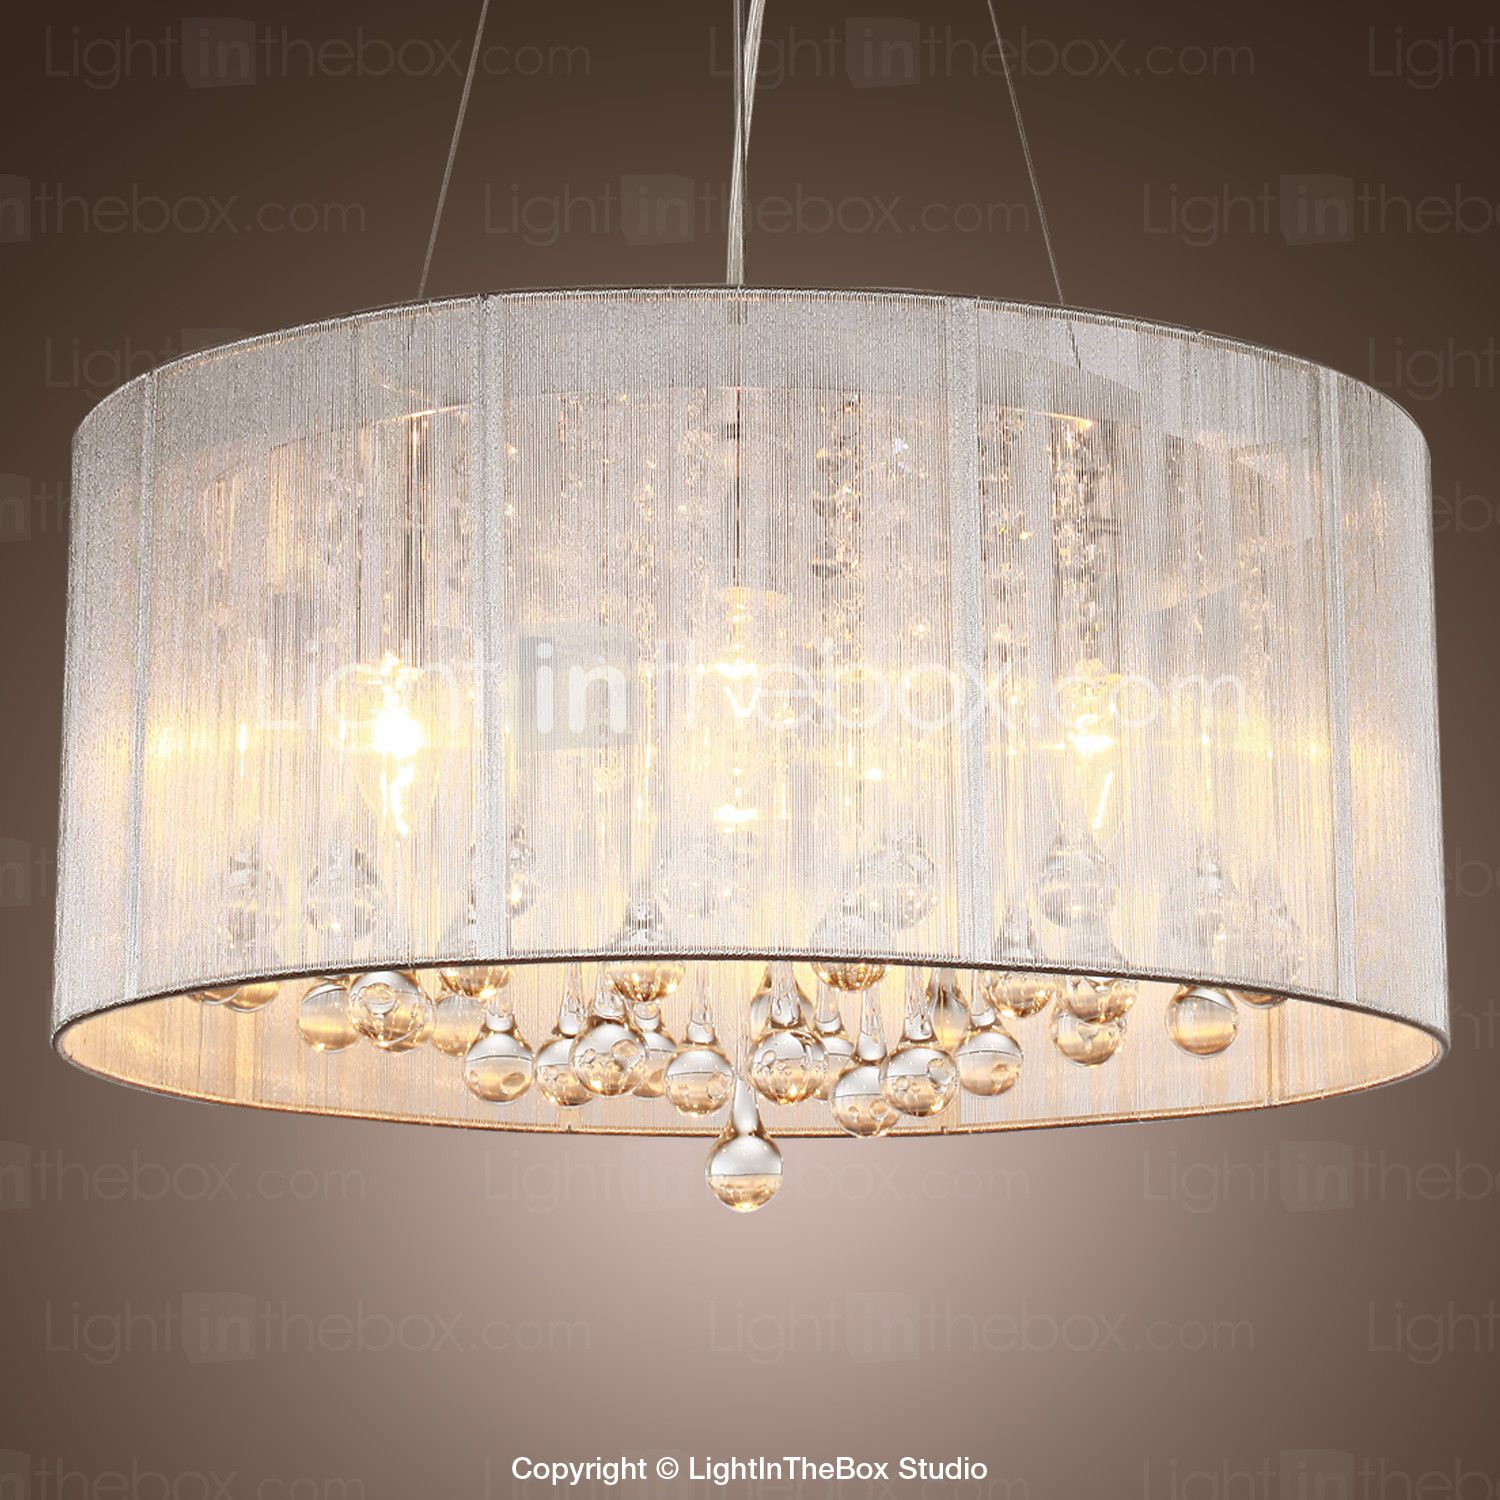 Modern Contemporary Drum Pendant Light Ambient Light For Living